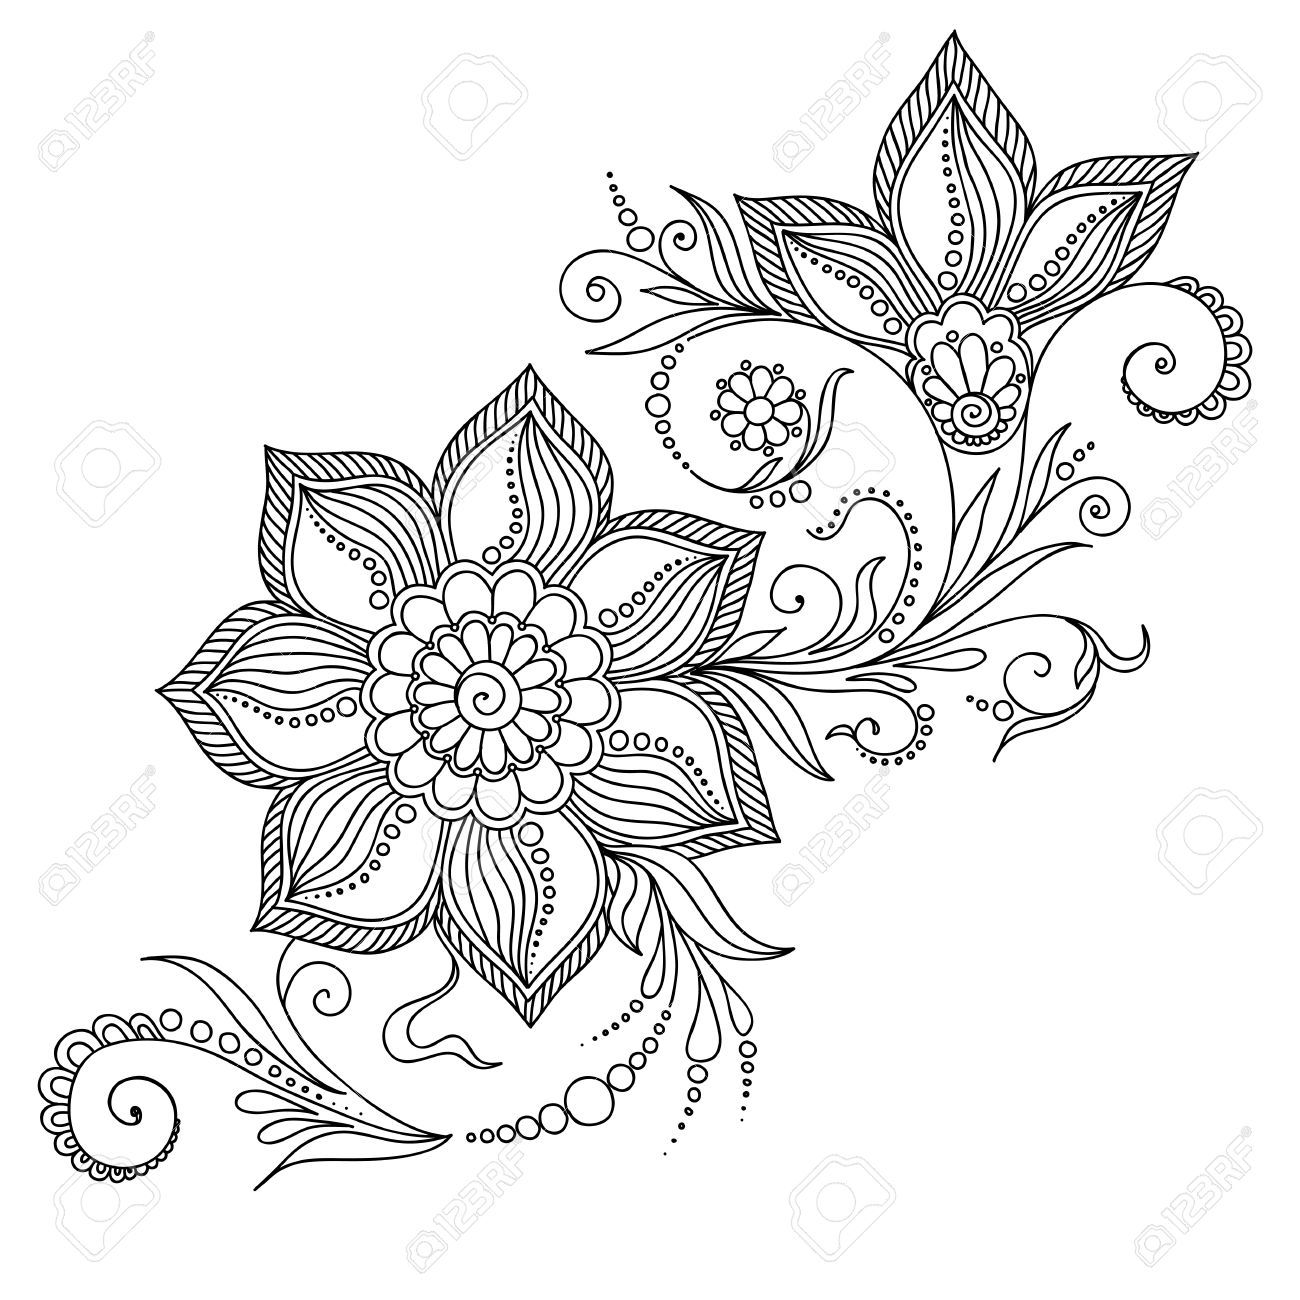 Coloring pages henna - K Ptal Lat A K Vetkez Re Adults Coloring